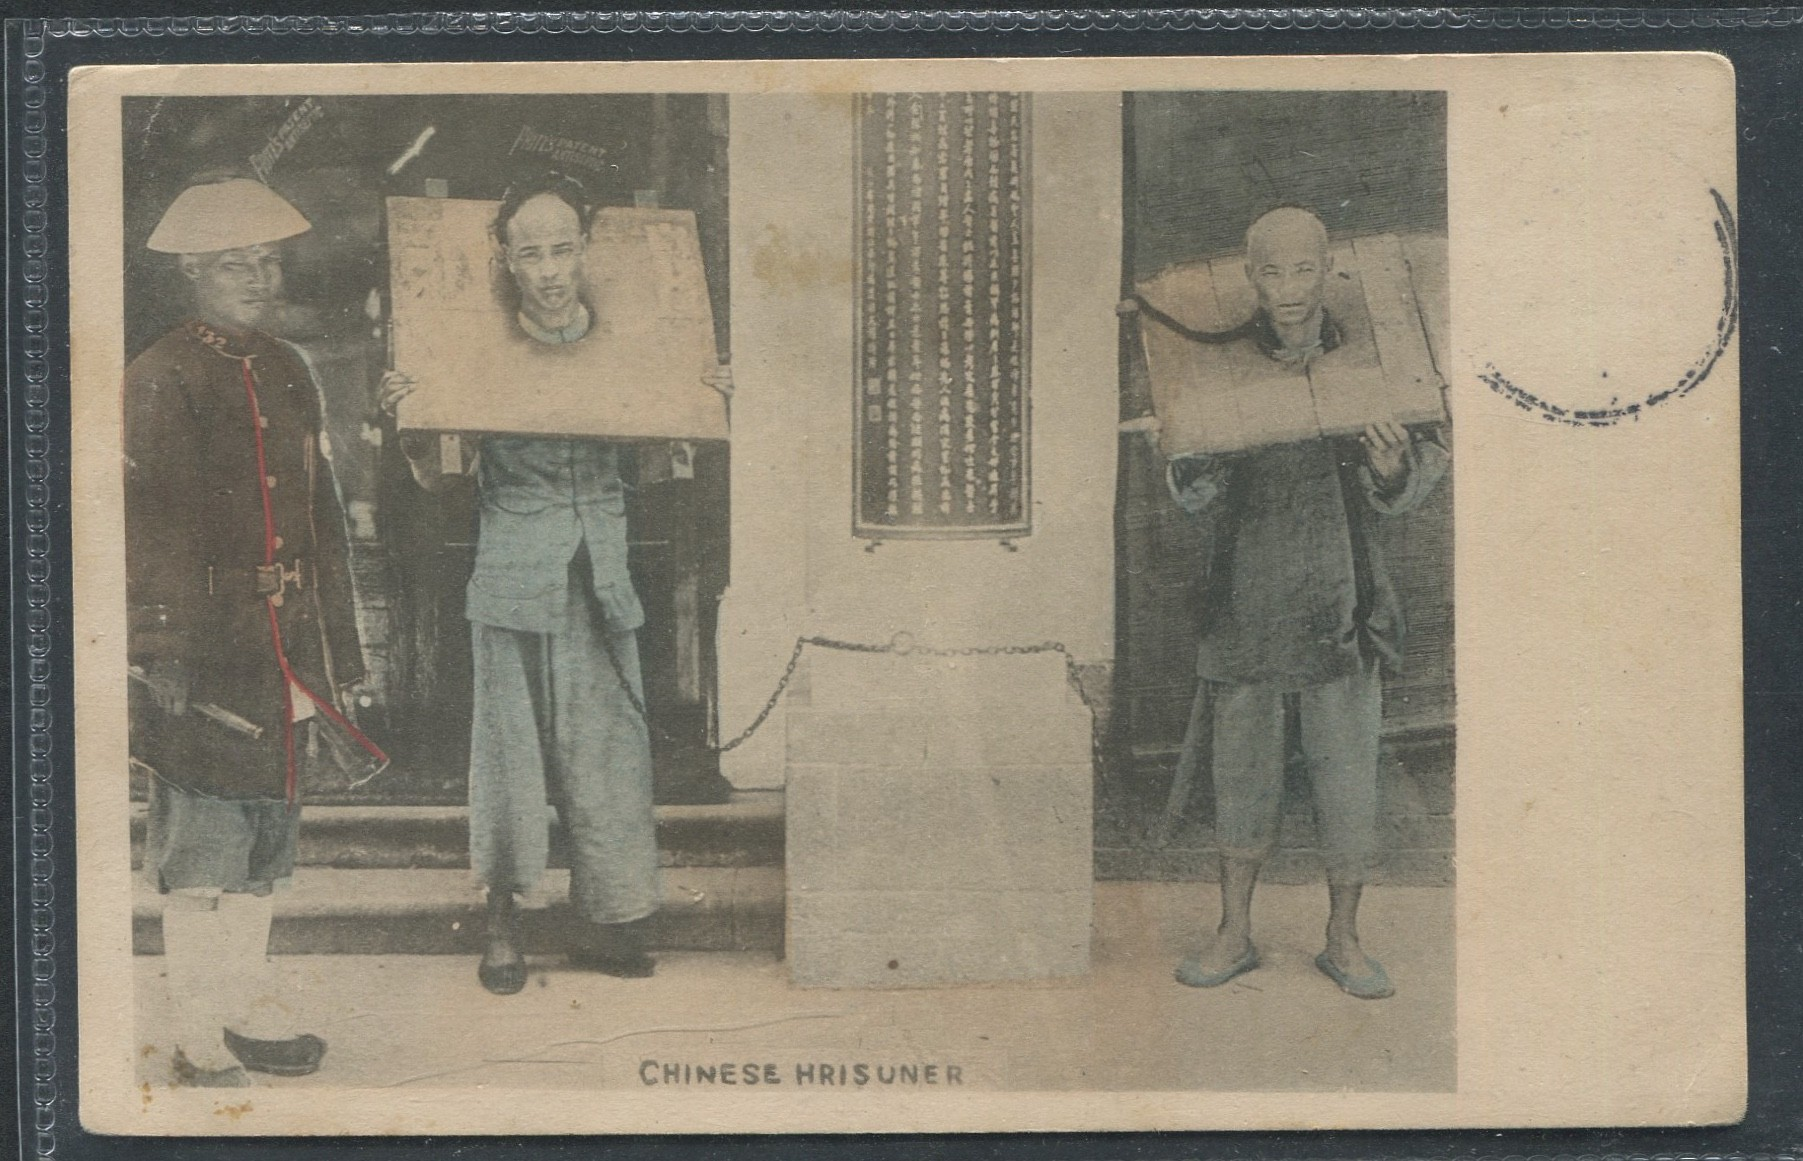 Lot 119 - EARLY CHINESE POSTCARD SHOWING CHINESE HRISUNER